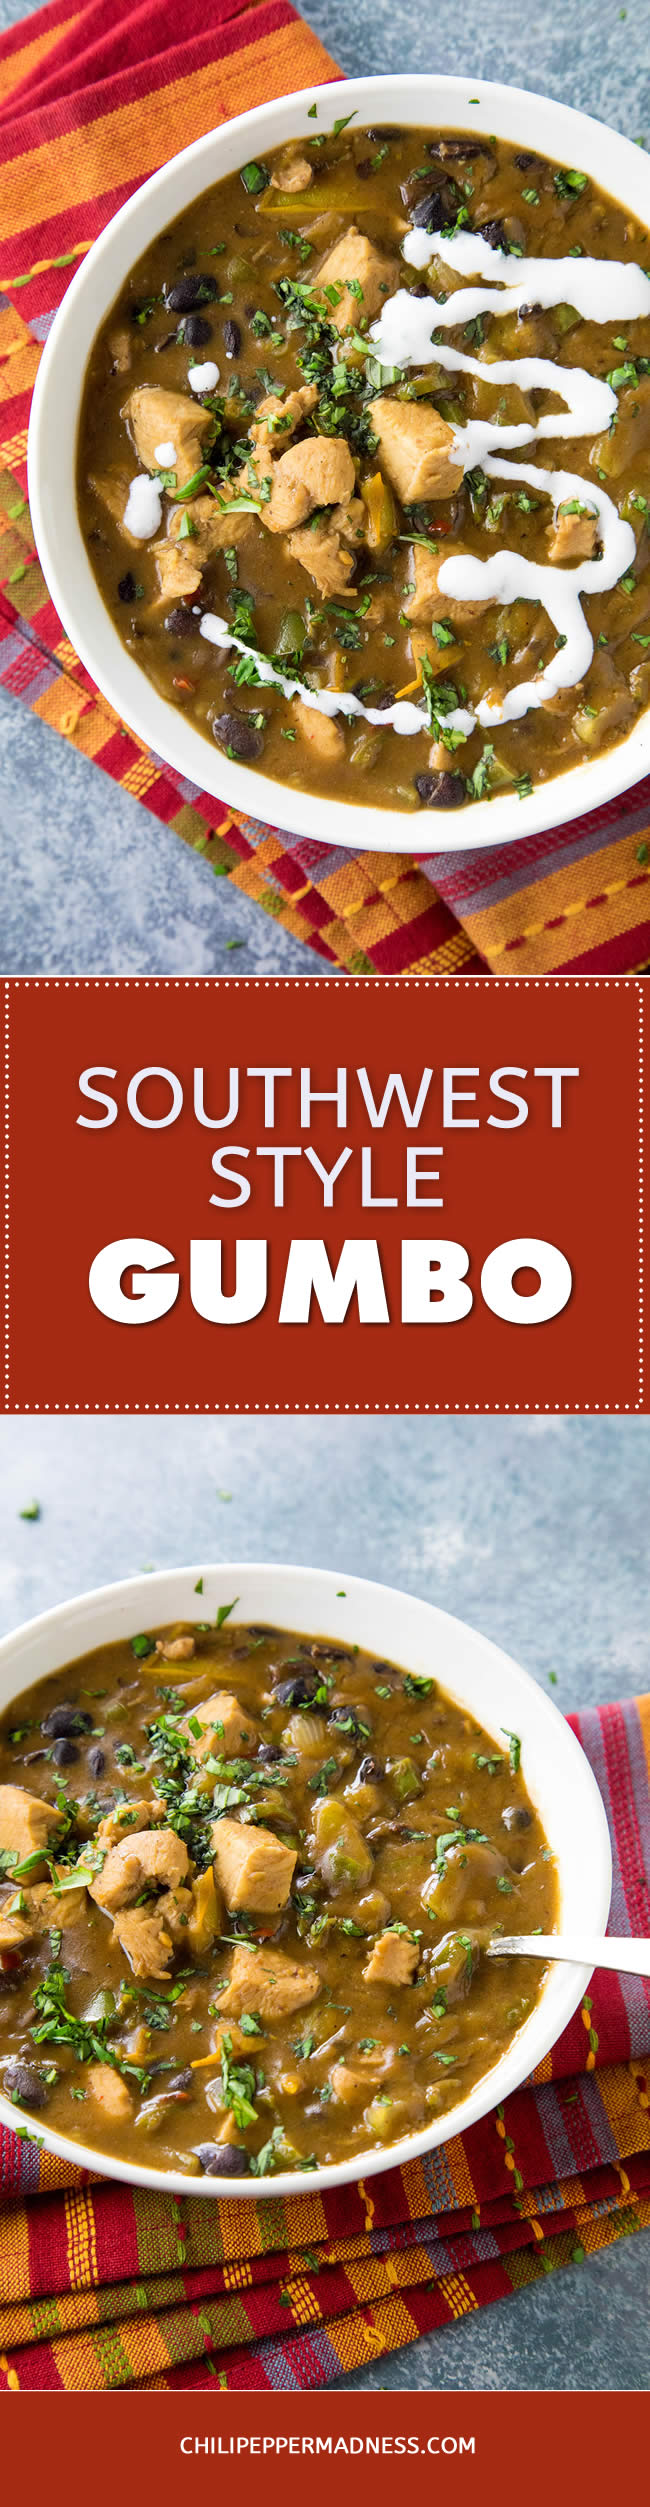 Southwest Style Chicken Gumbo - Recipe